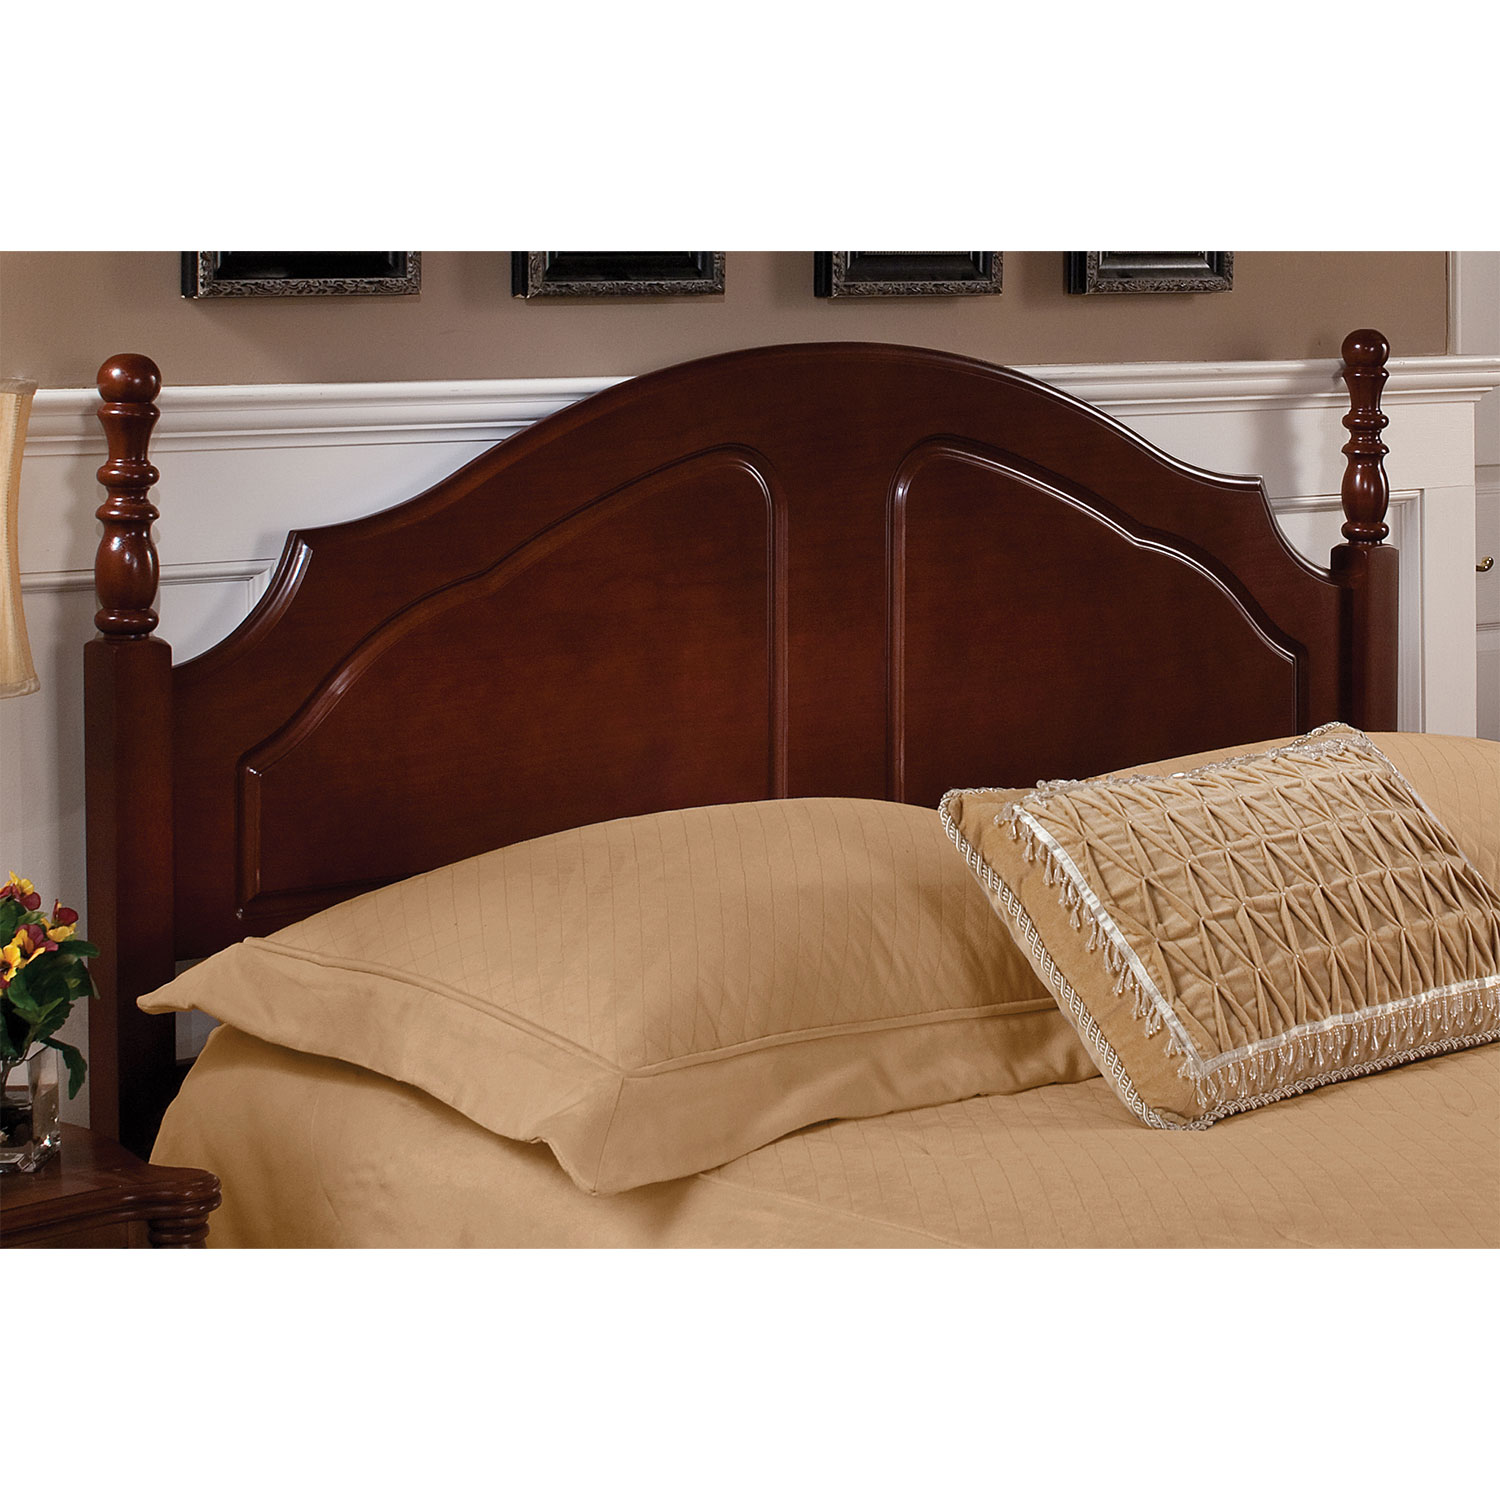 value city headboards headboards bedroom furniture value city furniture 13709